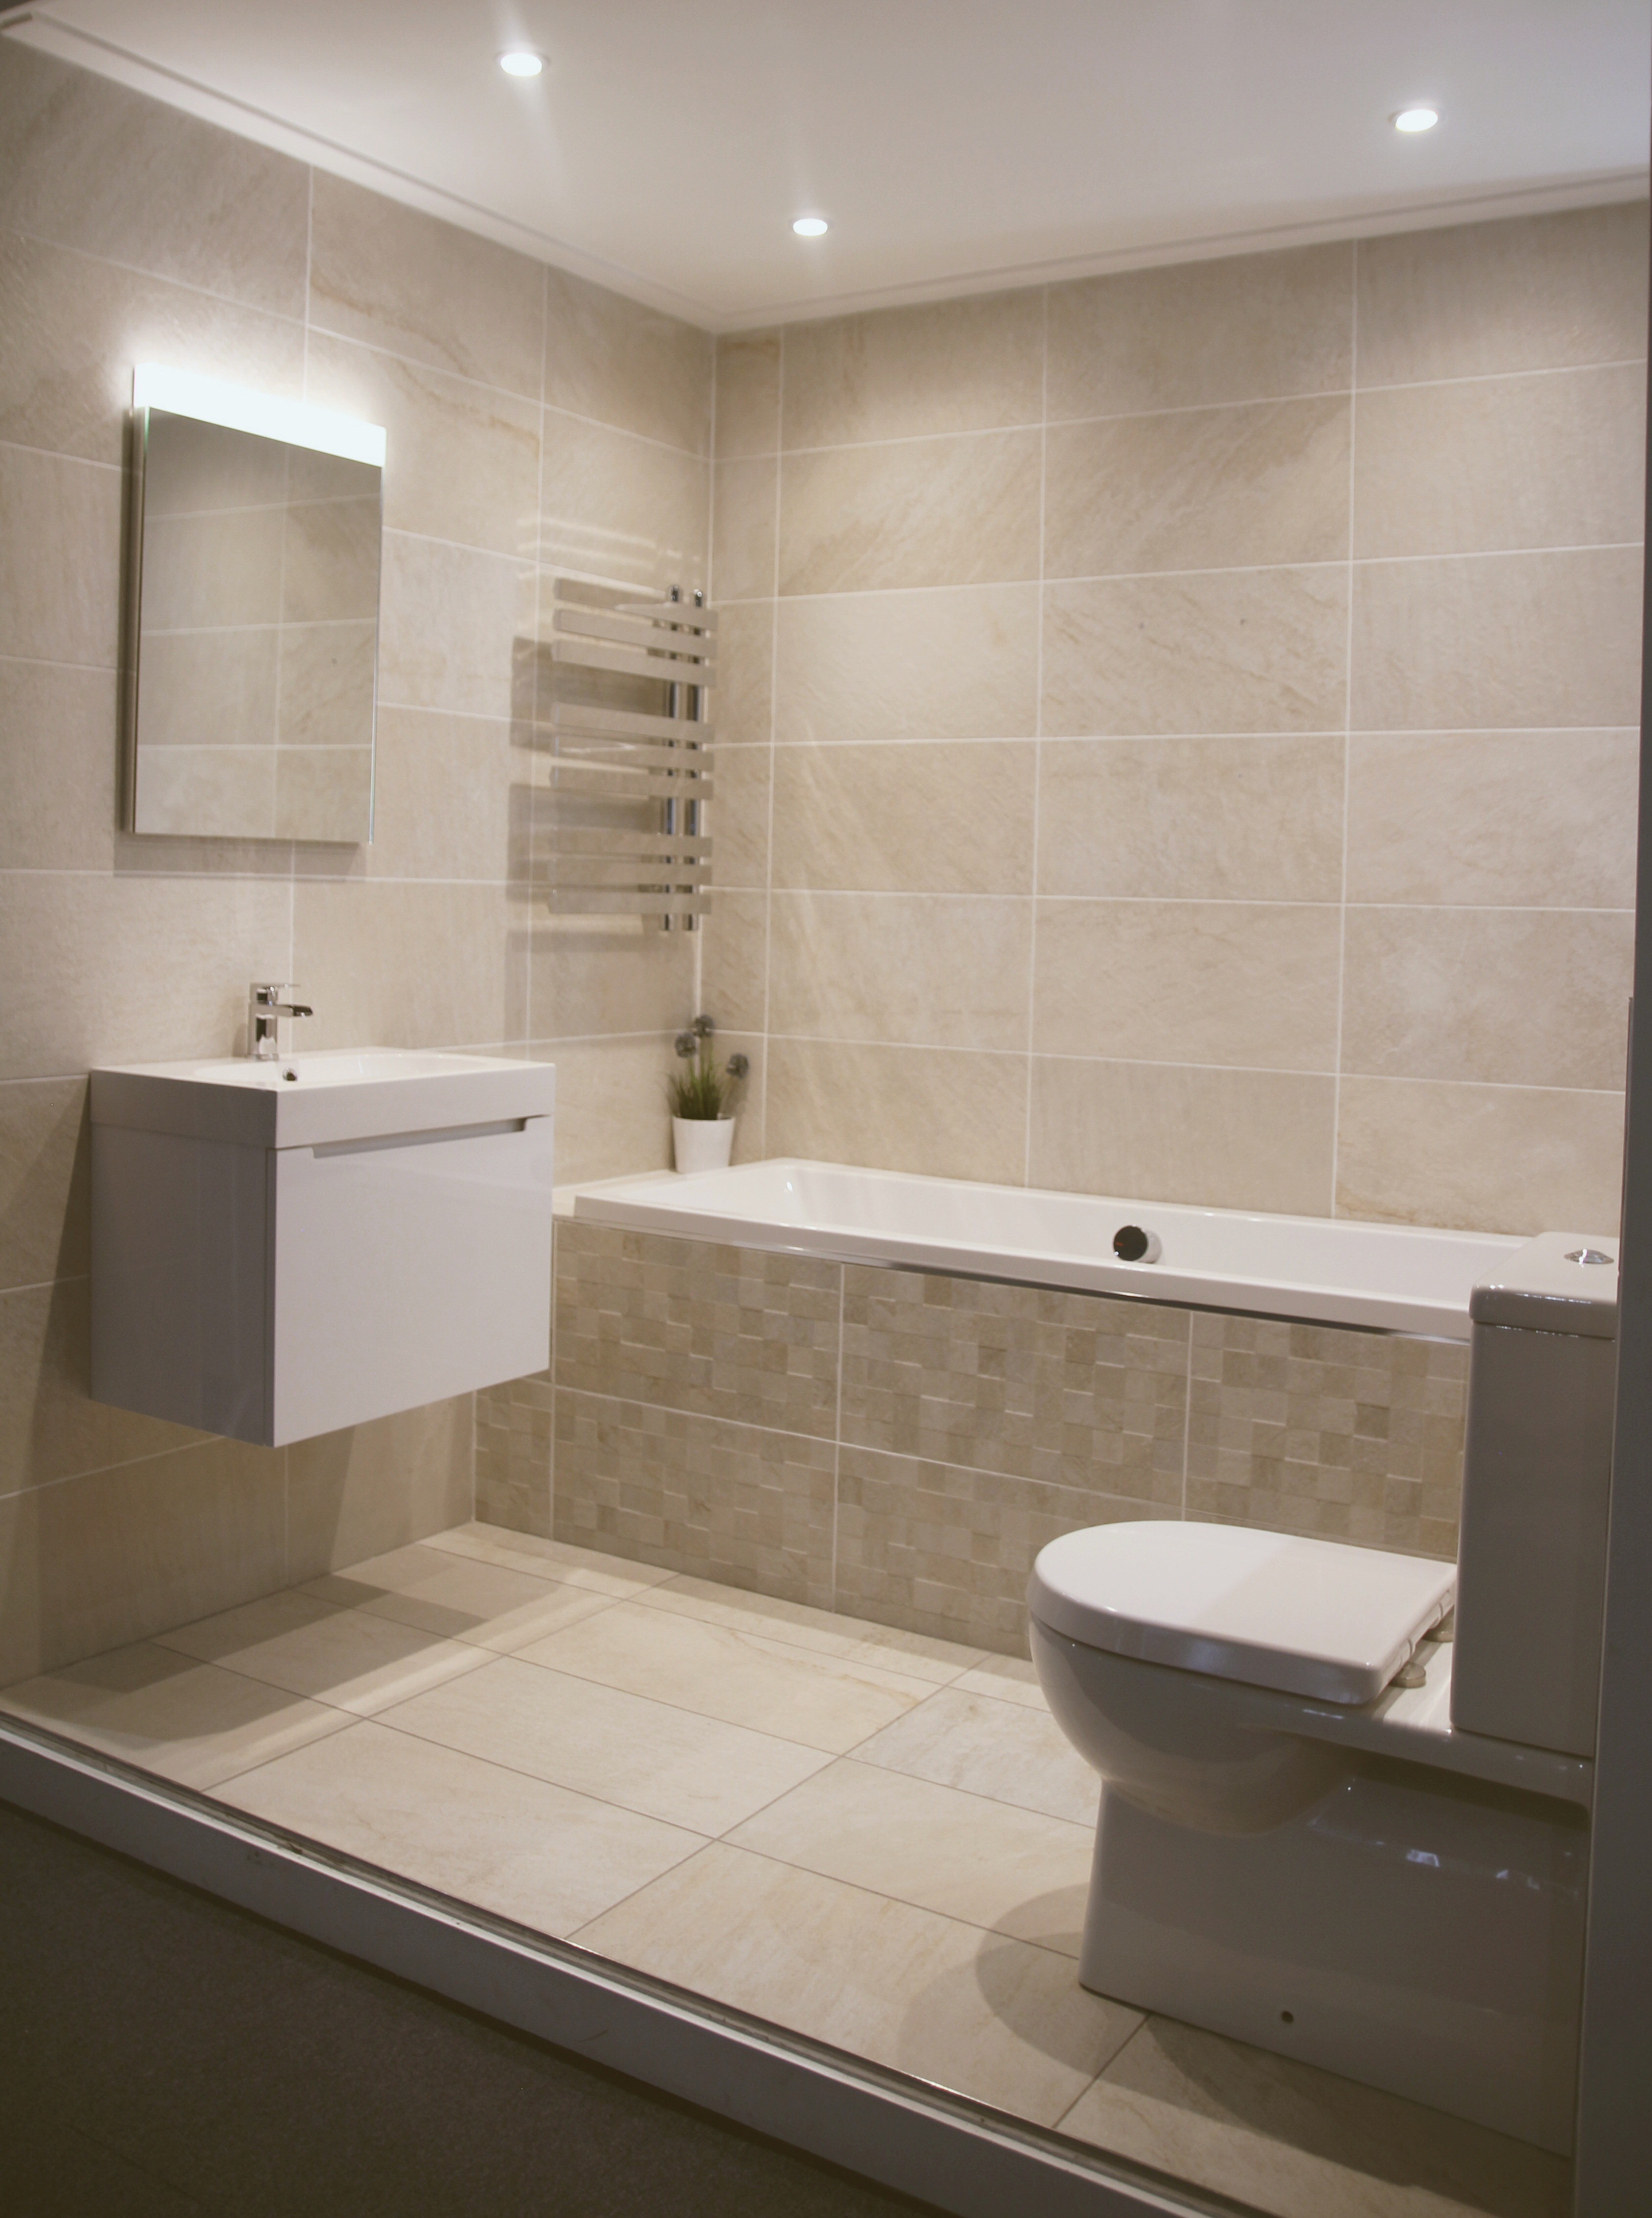 of over in builder bathtubs showroom warehouse bathroom bathtub our standing free styles s